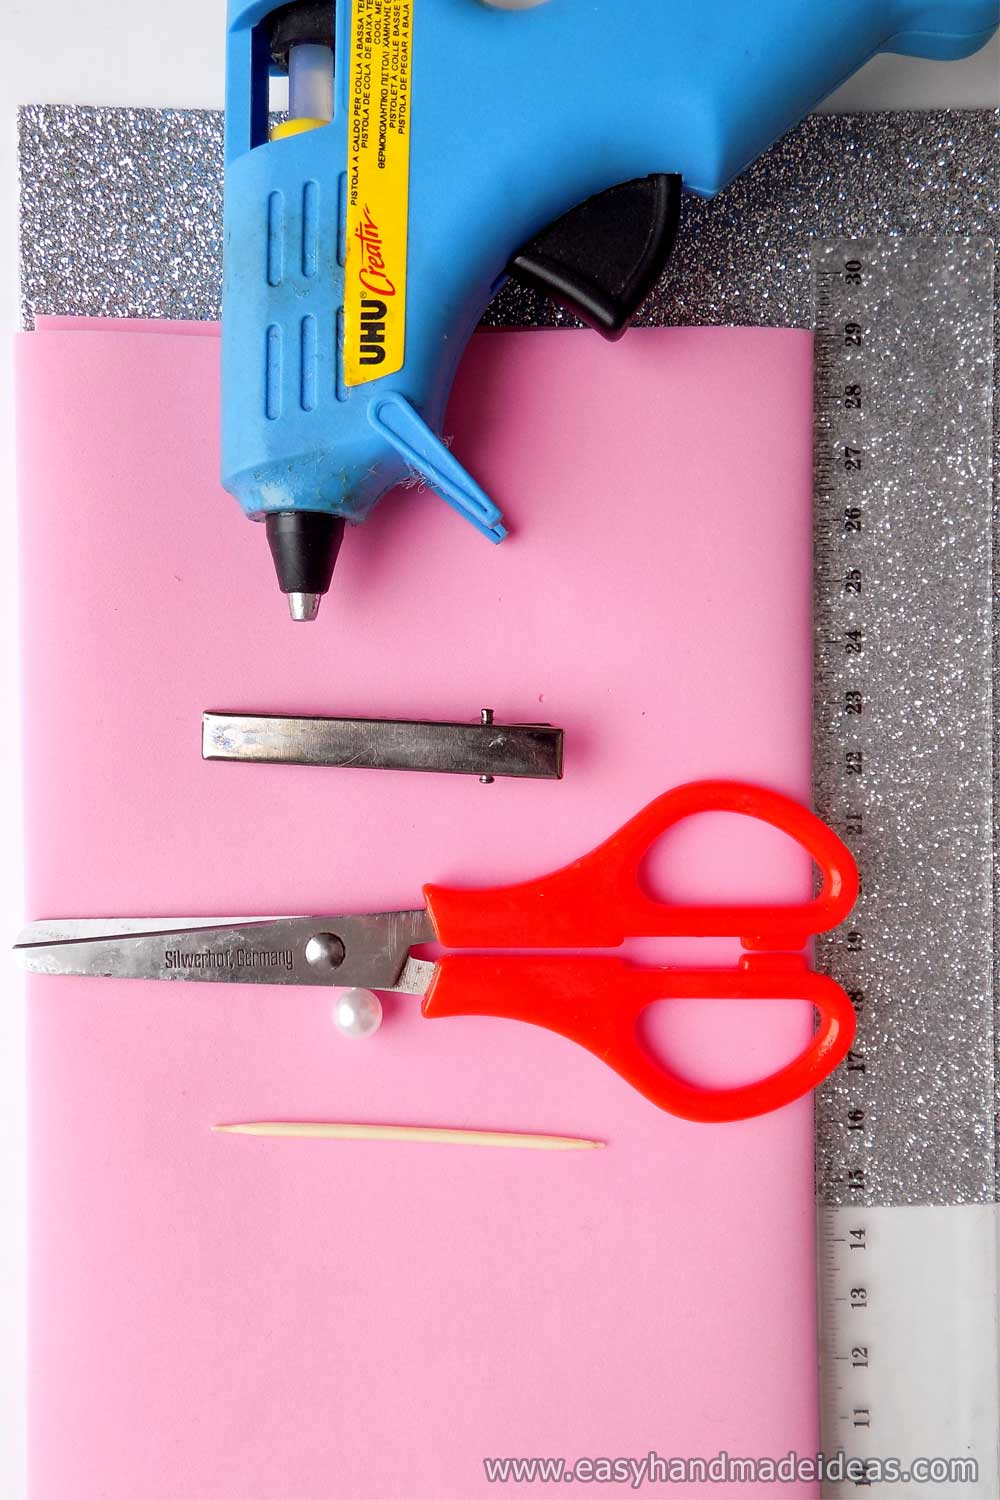 Materials and Tools for Hairpins